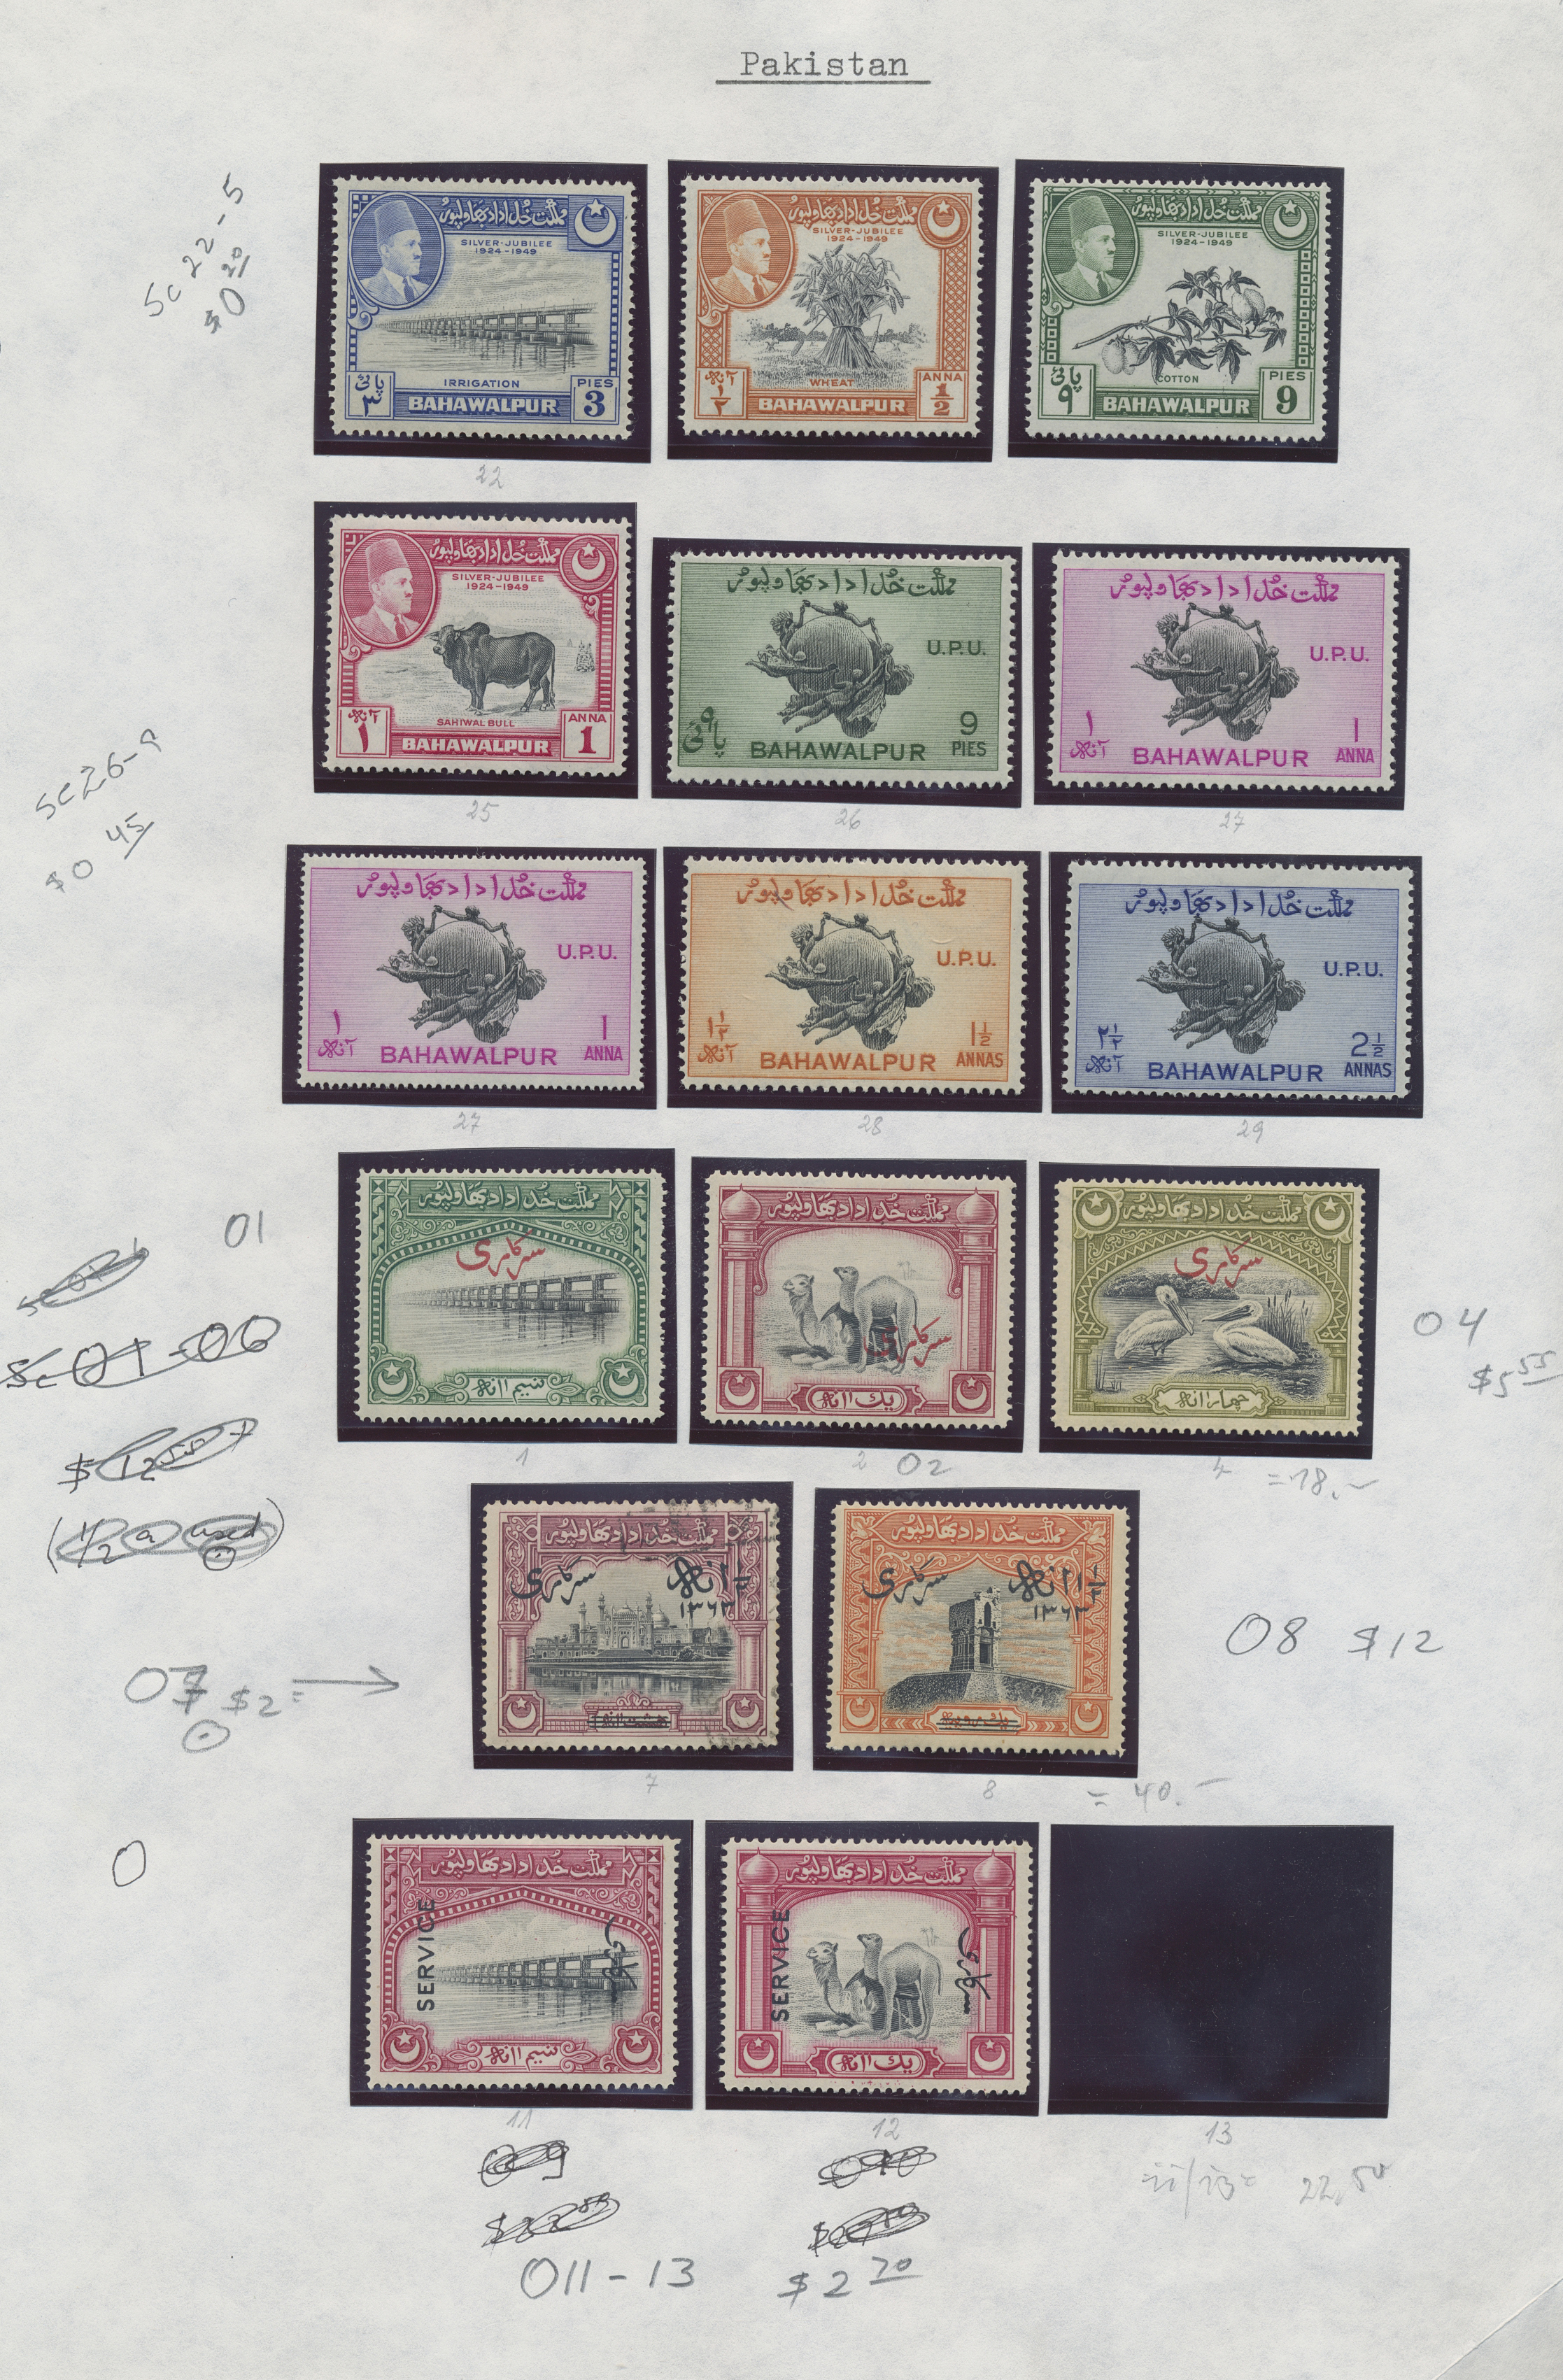 Lot 28623 pakistan auktionshaus christoph gärtner gmbh co kg collections asia